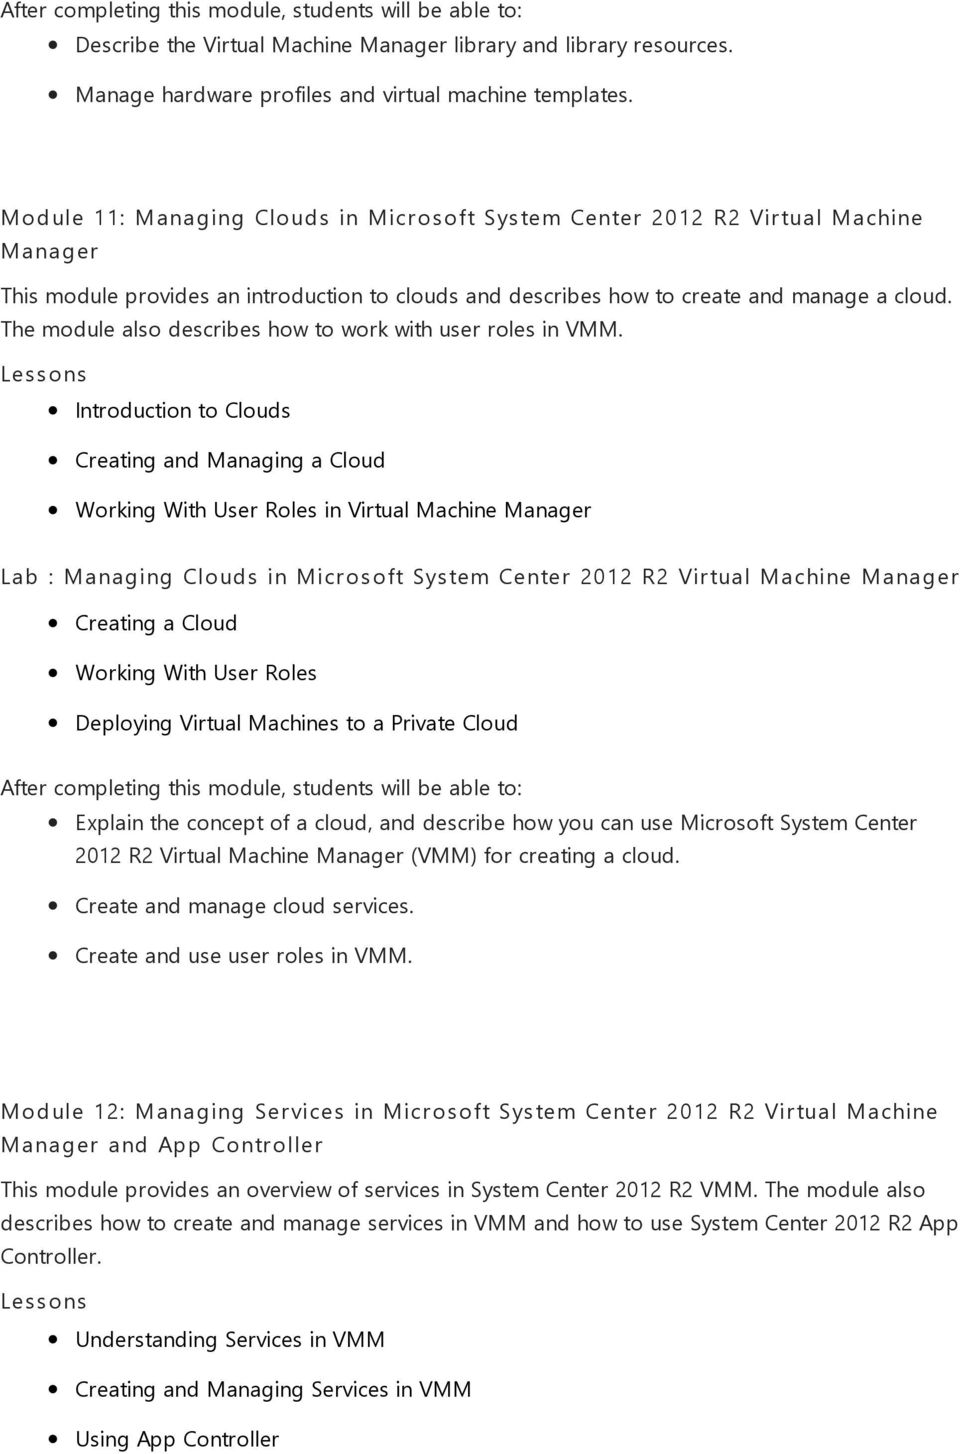 The module also describes how to work with user roles in VMM.